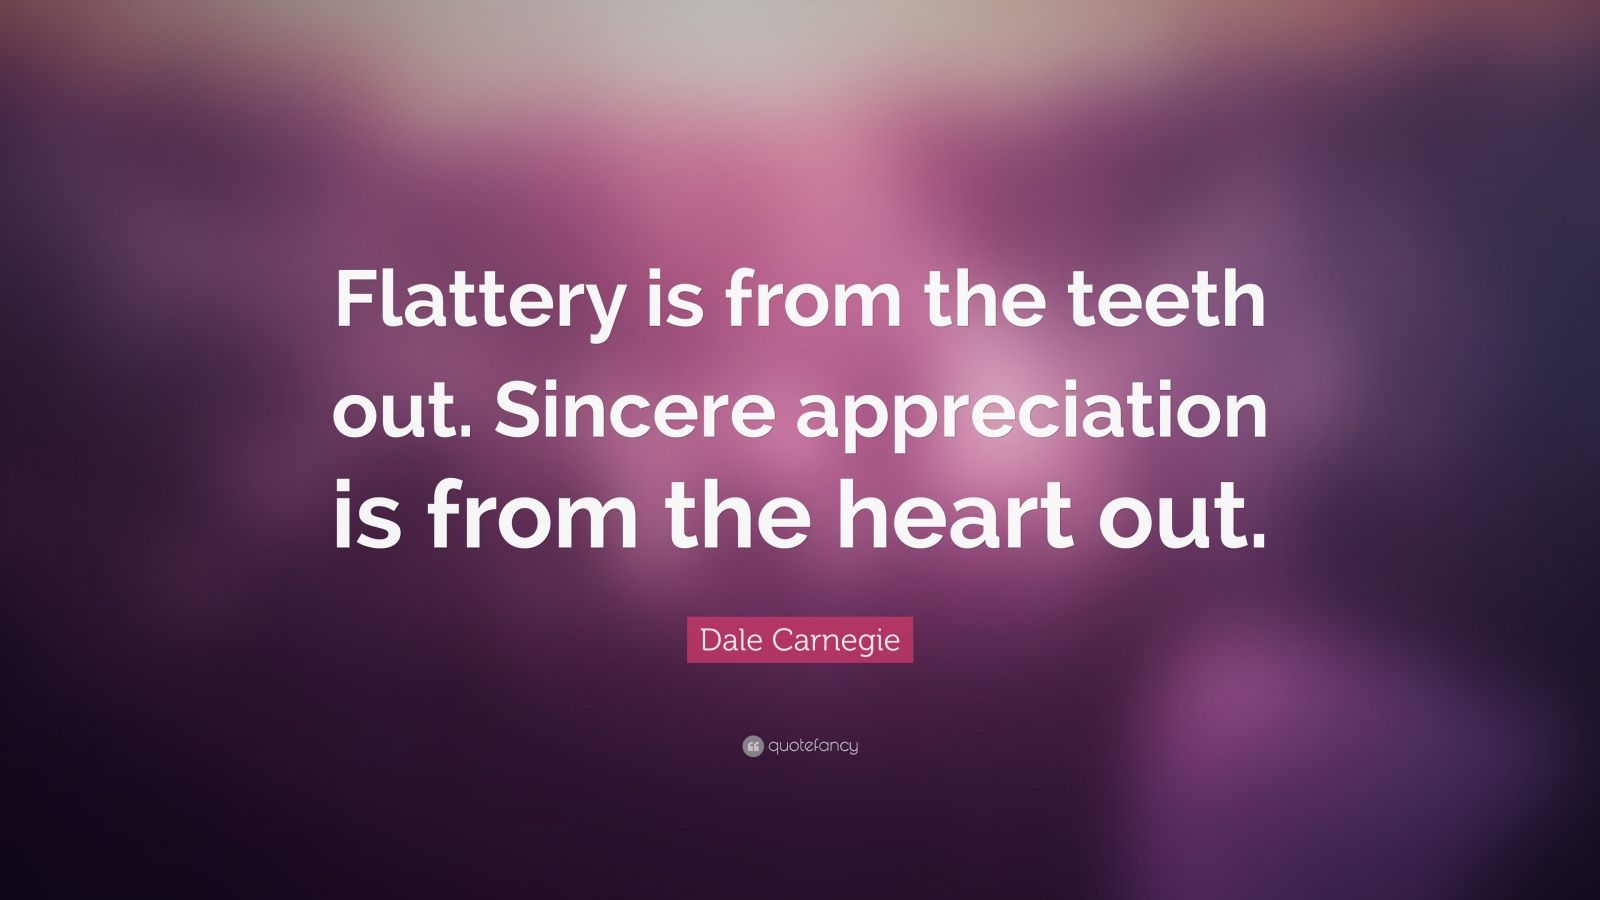 """Dale Carnegie Quote: """"Flattery is from the teeth out. Sincere appreciation is from the heart out."""""""